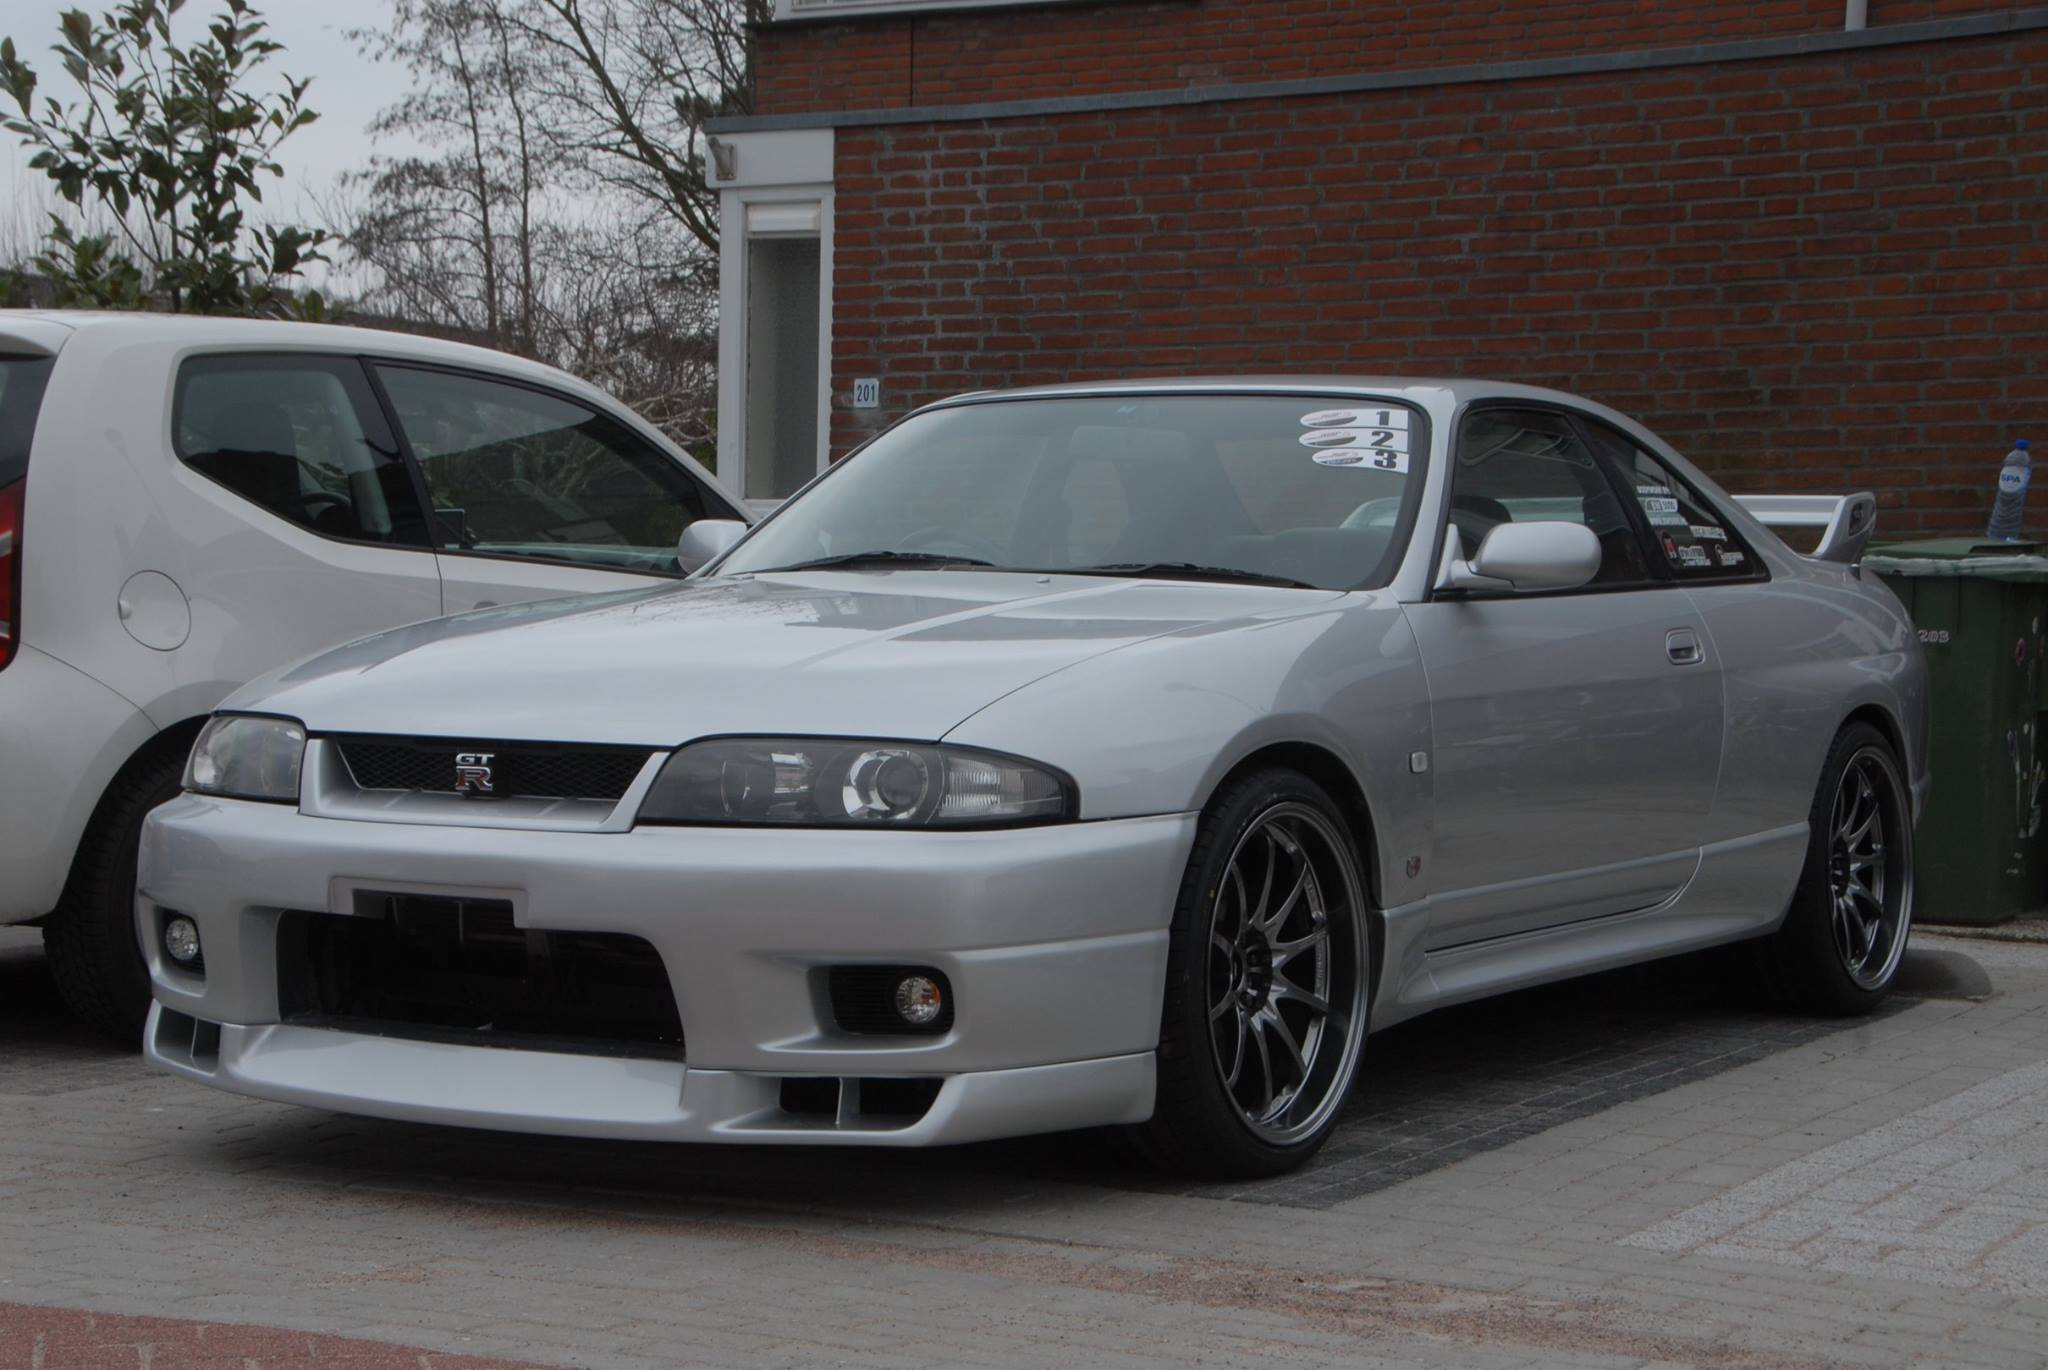 Gt R R33 On Volk Racing Ce28n Kami Speed Blog